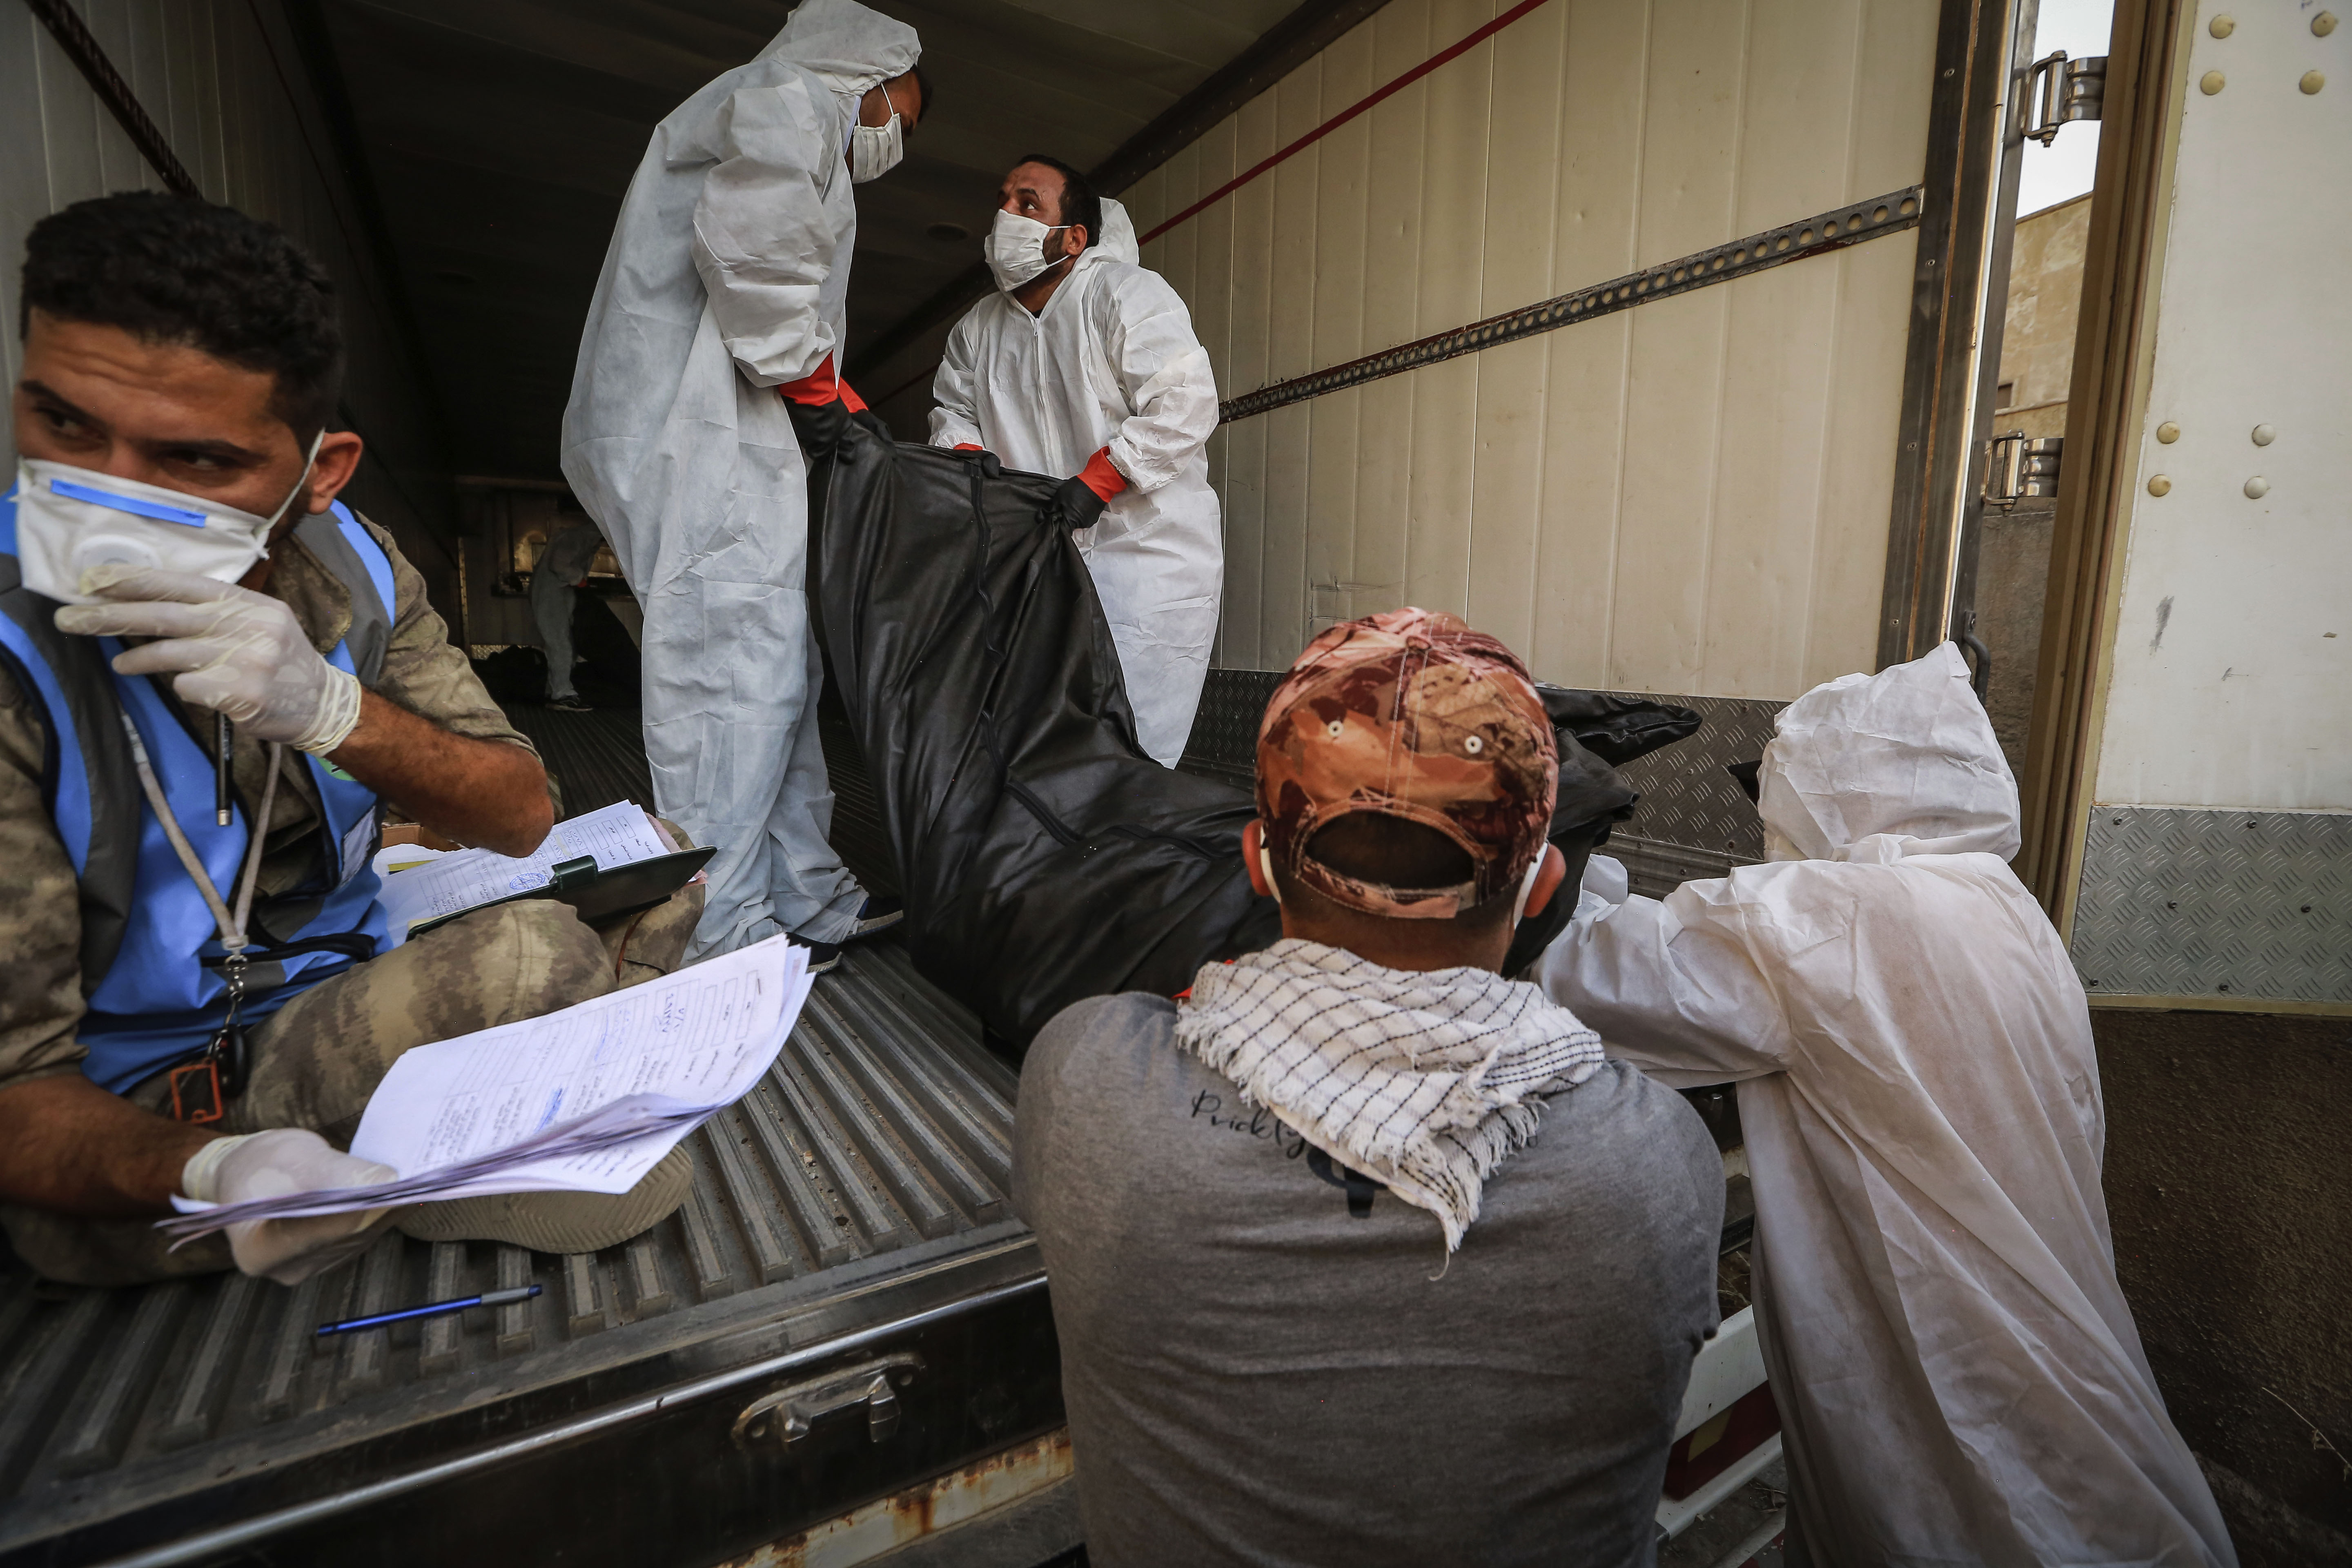 Workers in Baghdad, Iraq, put the body of a person said to have died from Covid-19 into a refrigerator truck to be transferred on July 11.